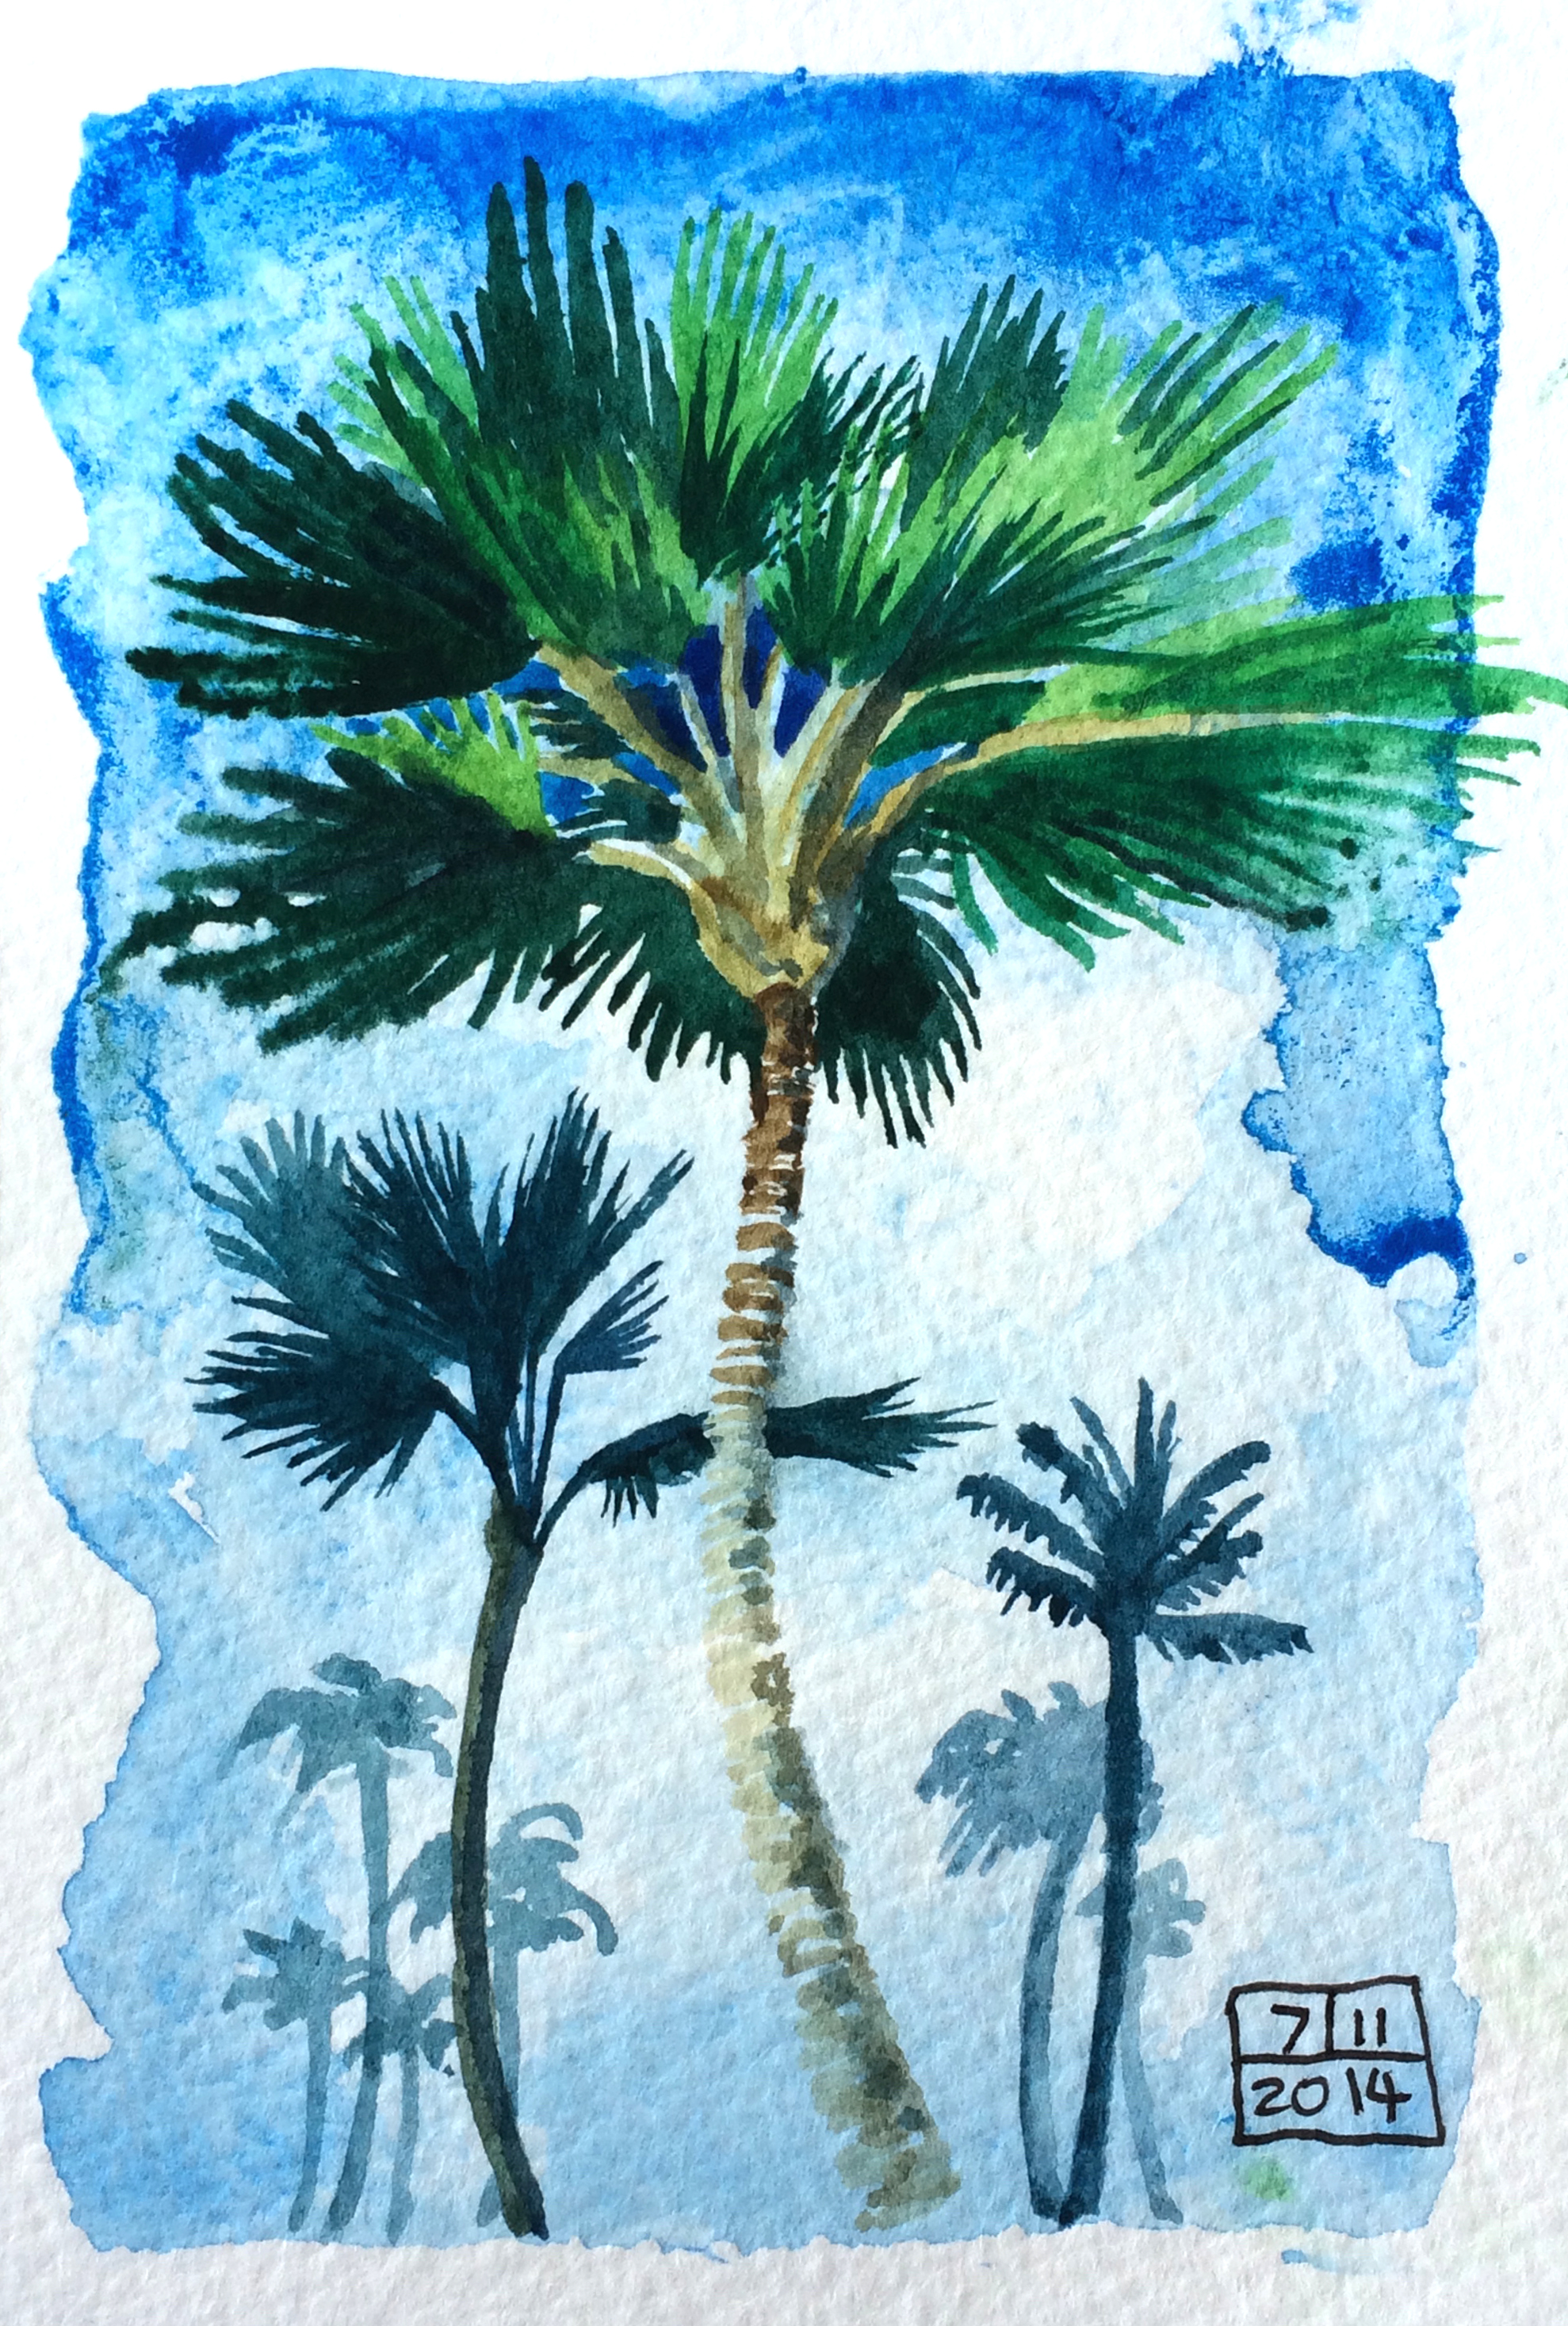 Palm trees on Maui